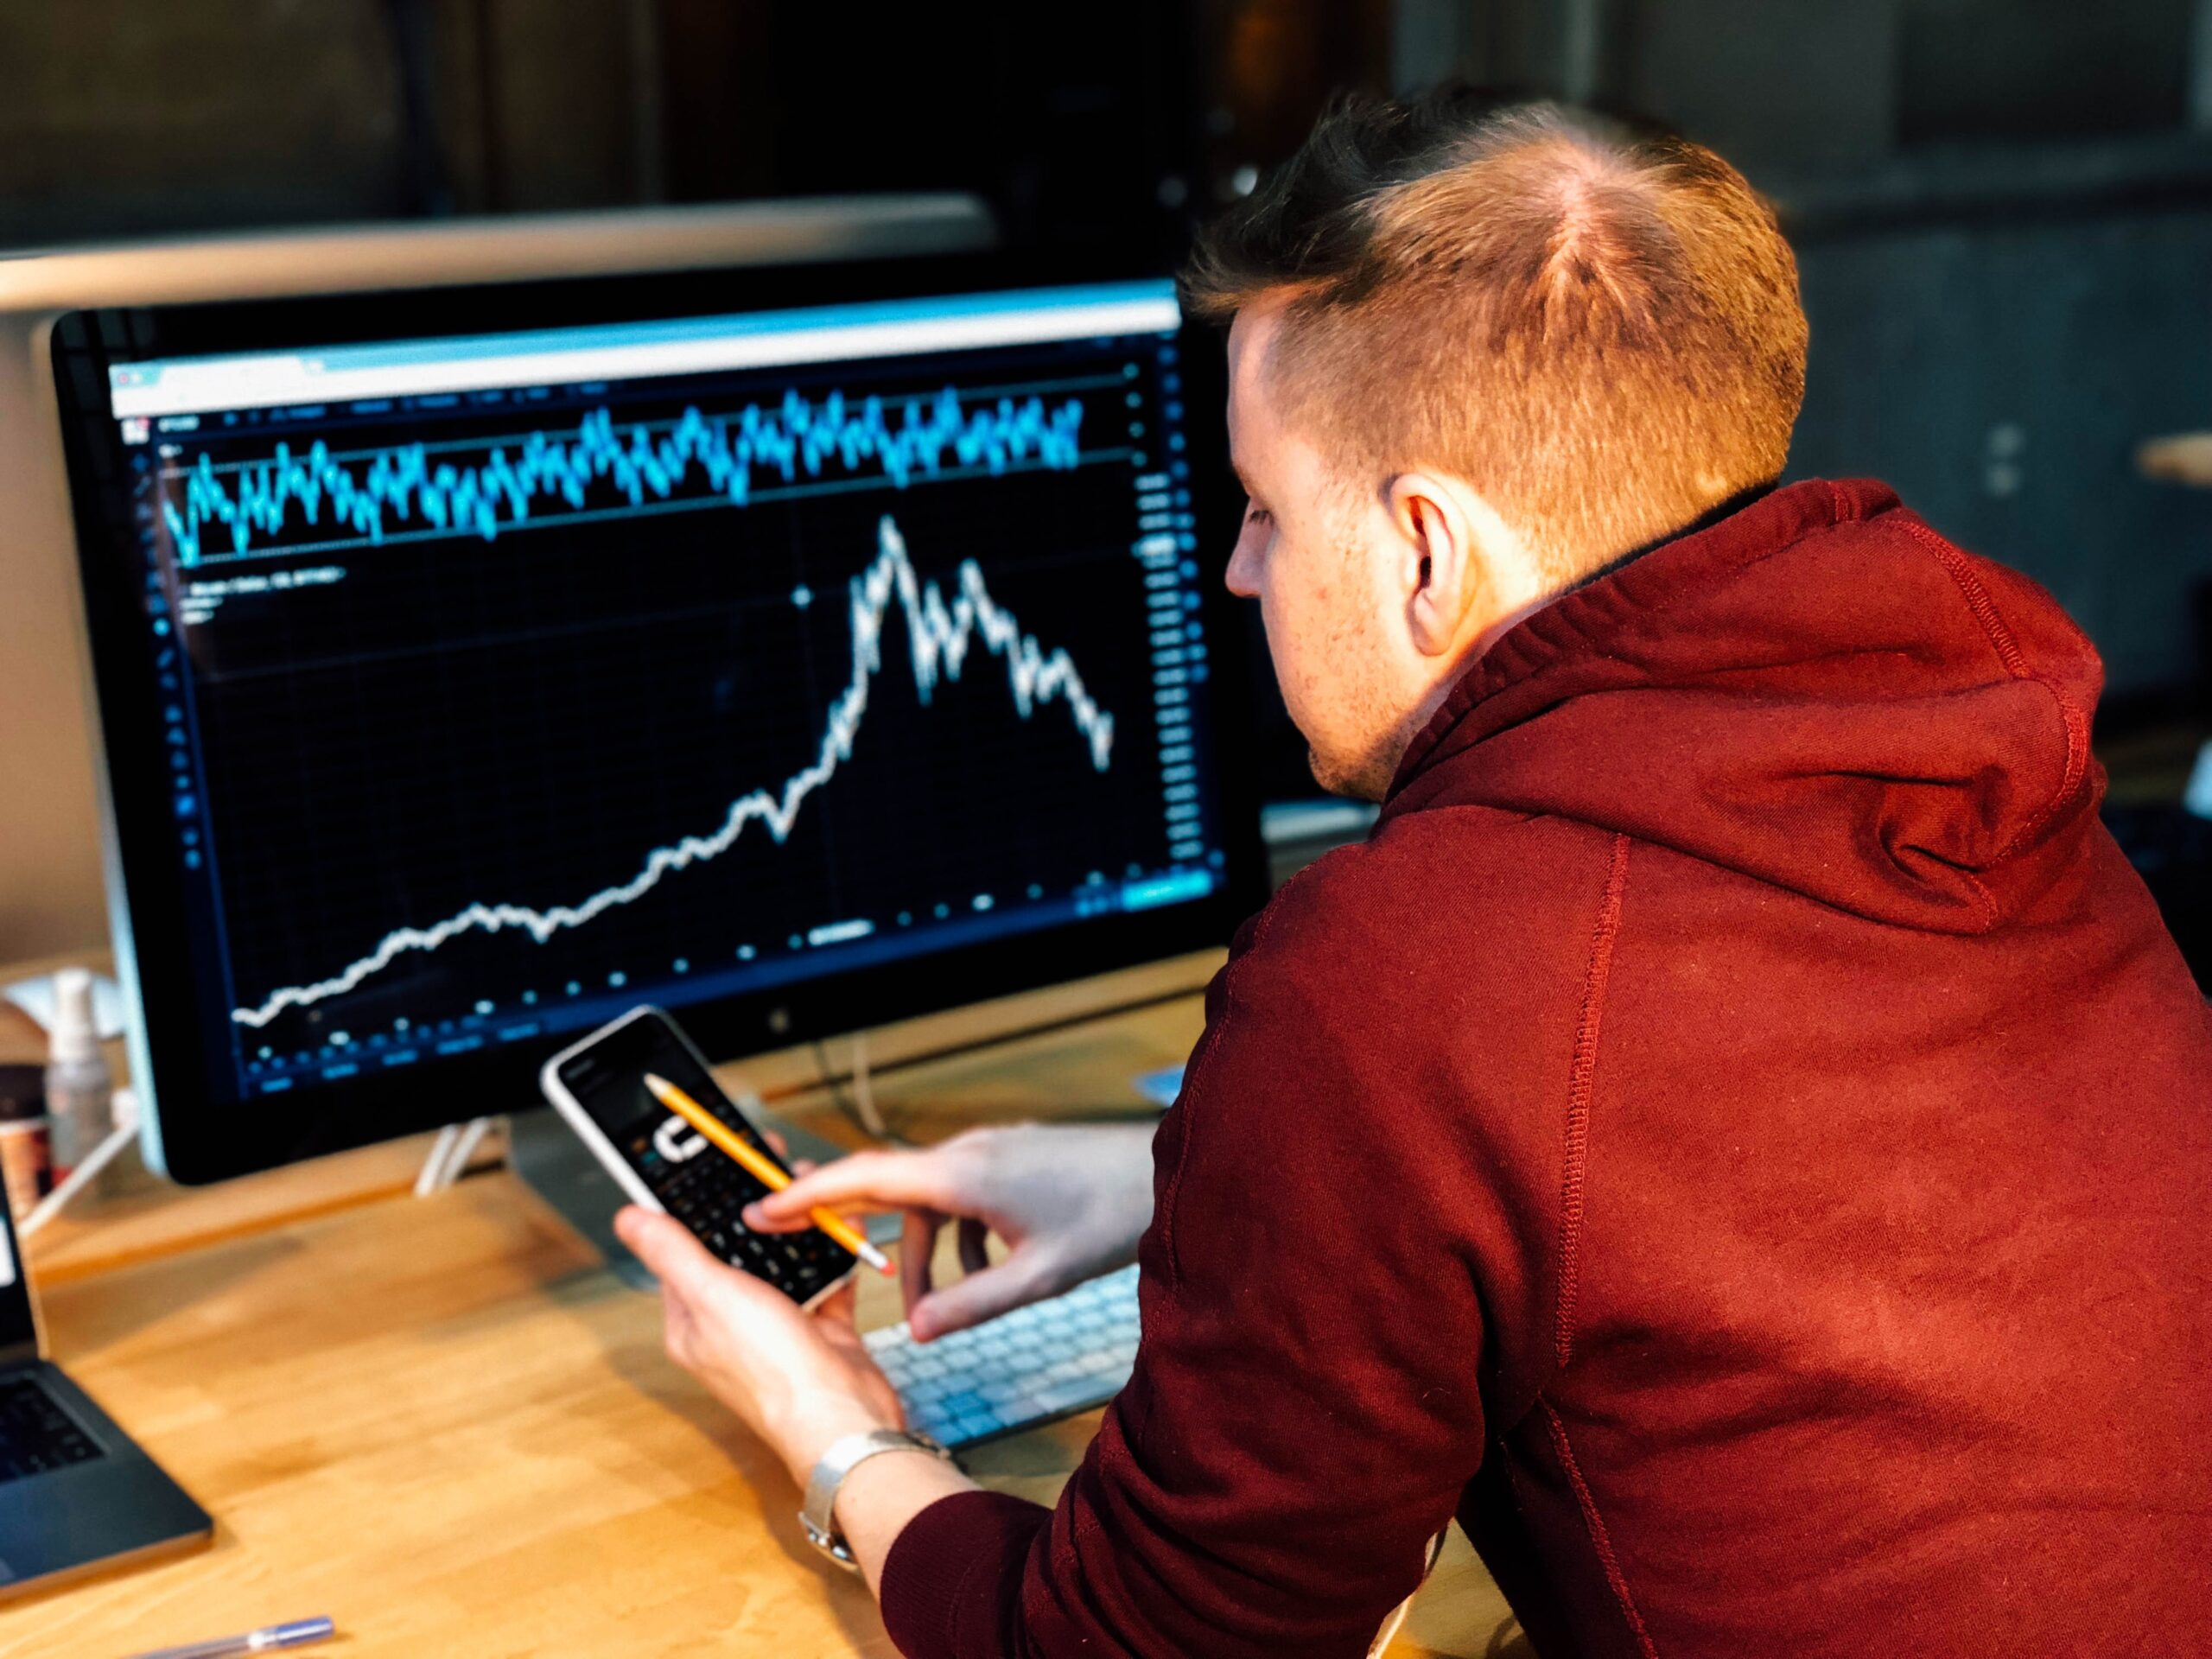 Man working on financial analyzing on a computer and phone.